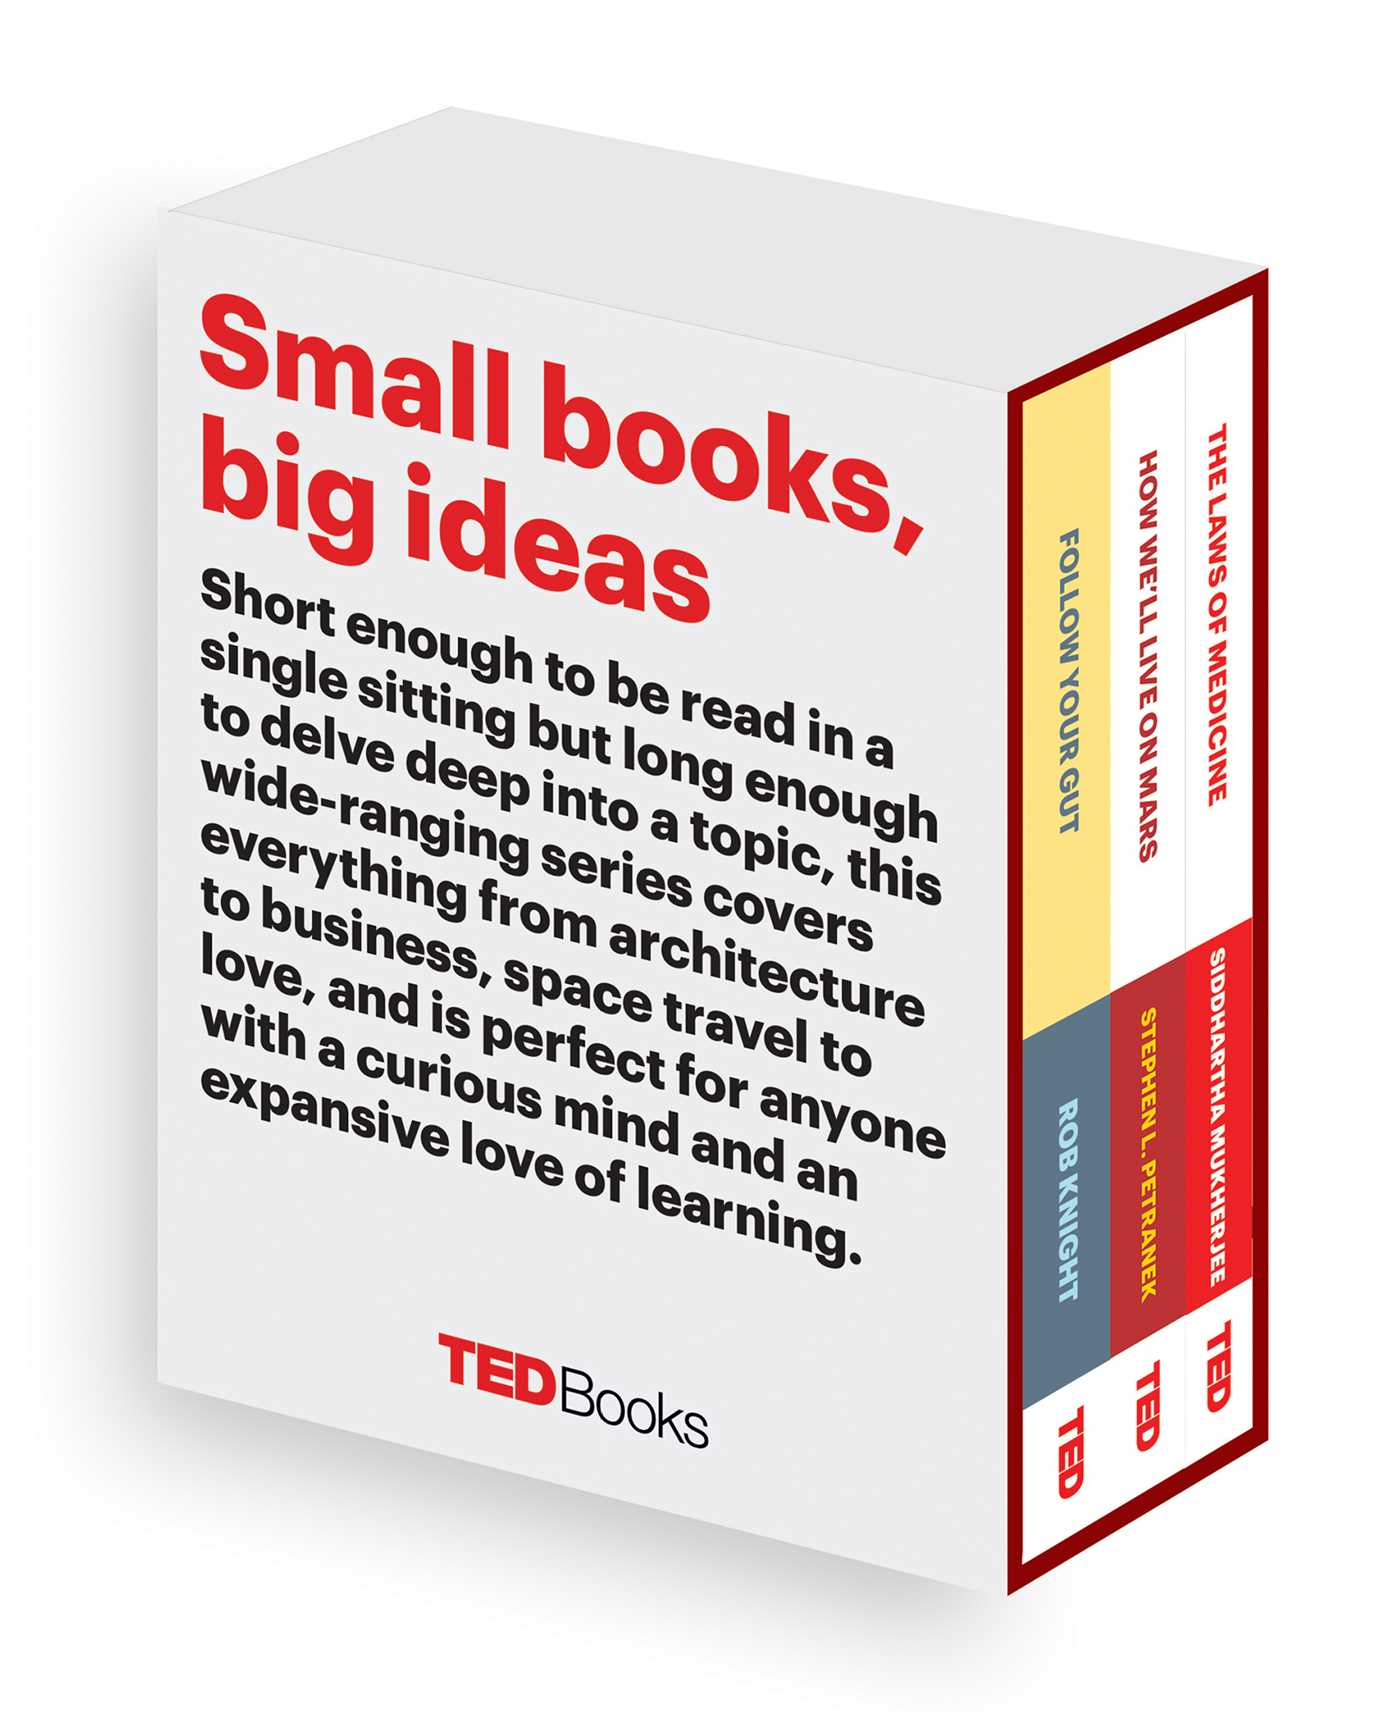 Ted books box set the science mind 9781501139116 hr